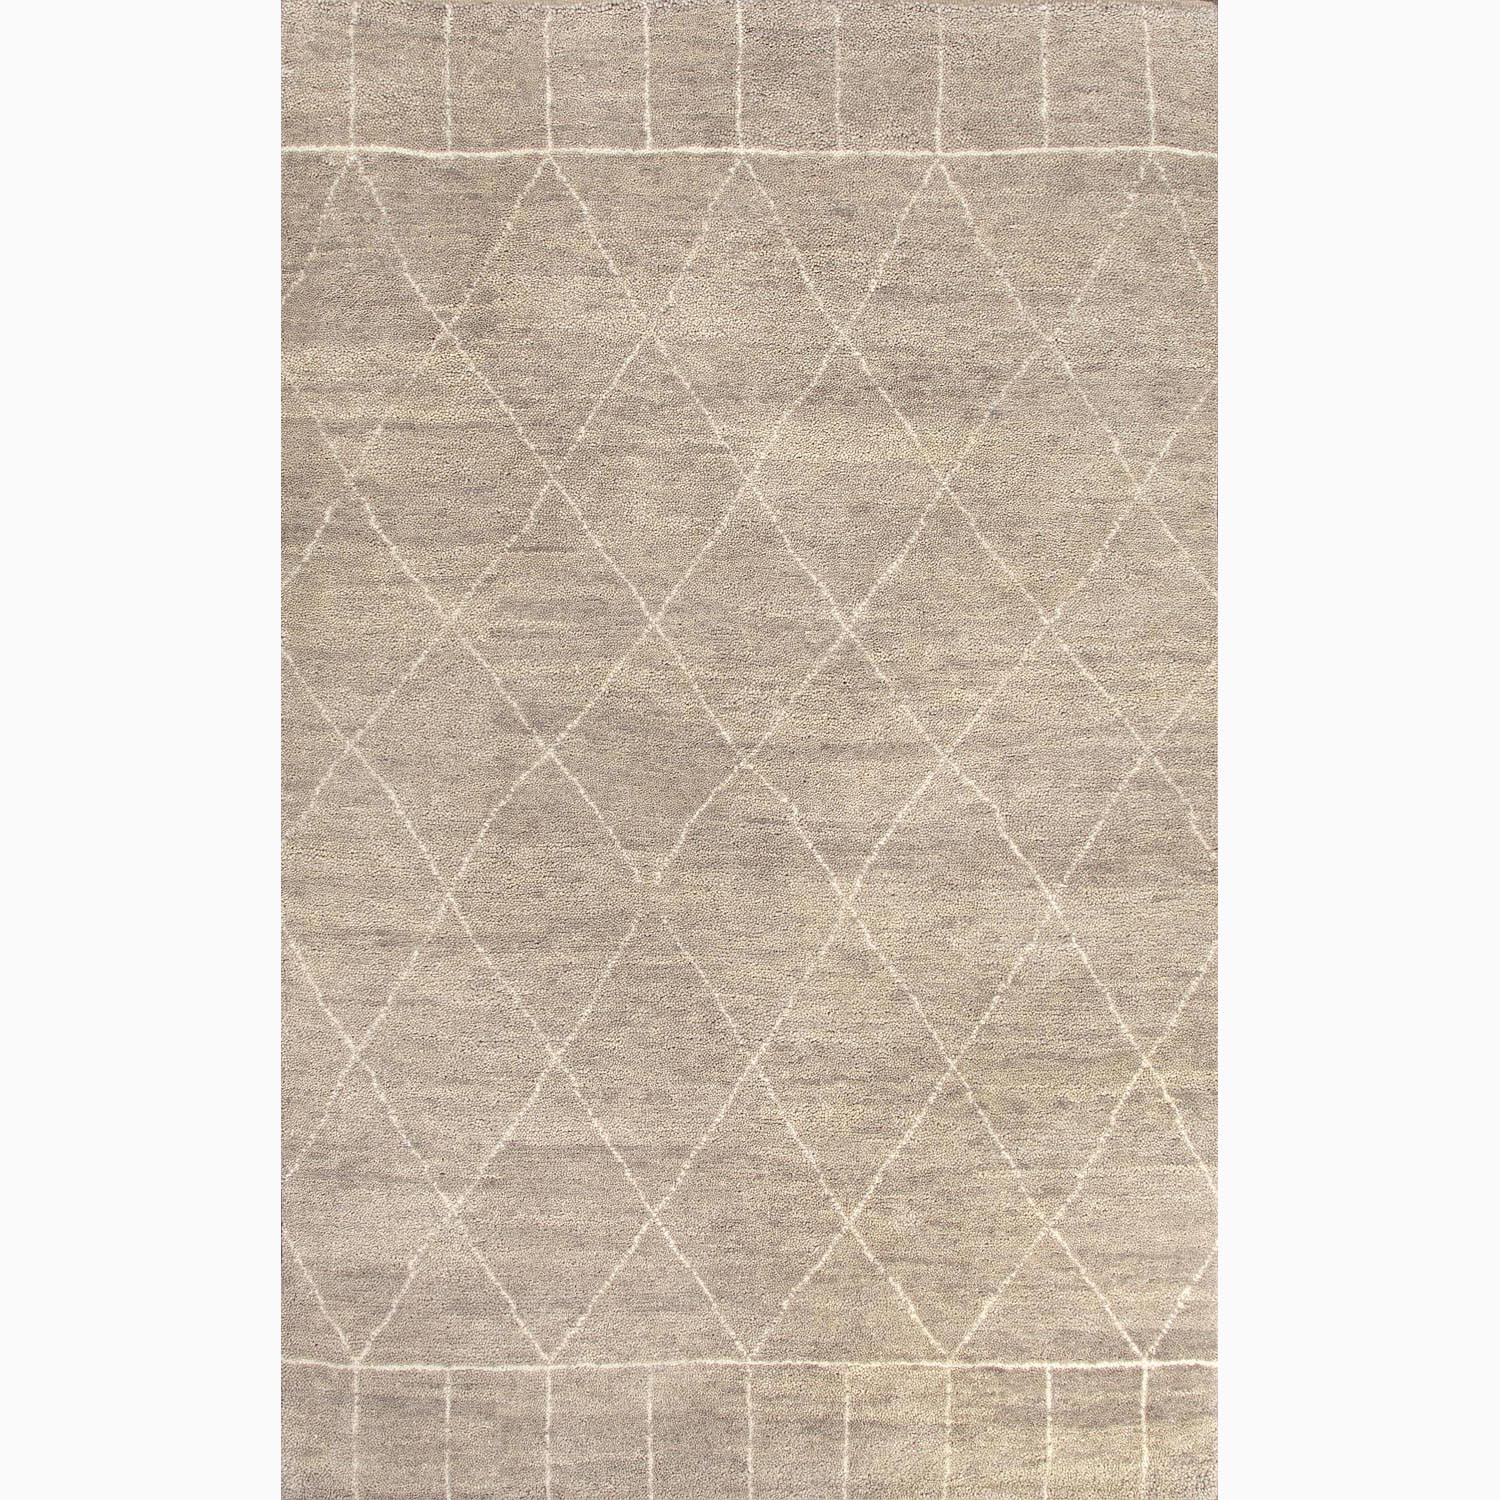 Handmade Moroccan Pattern Gray/ Ivory Wool Ultra-plush Area Rug (5' x 8')